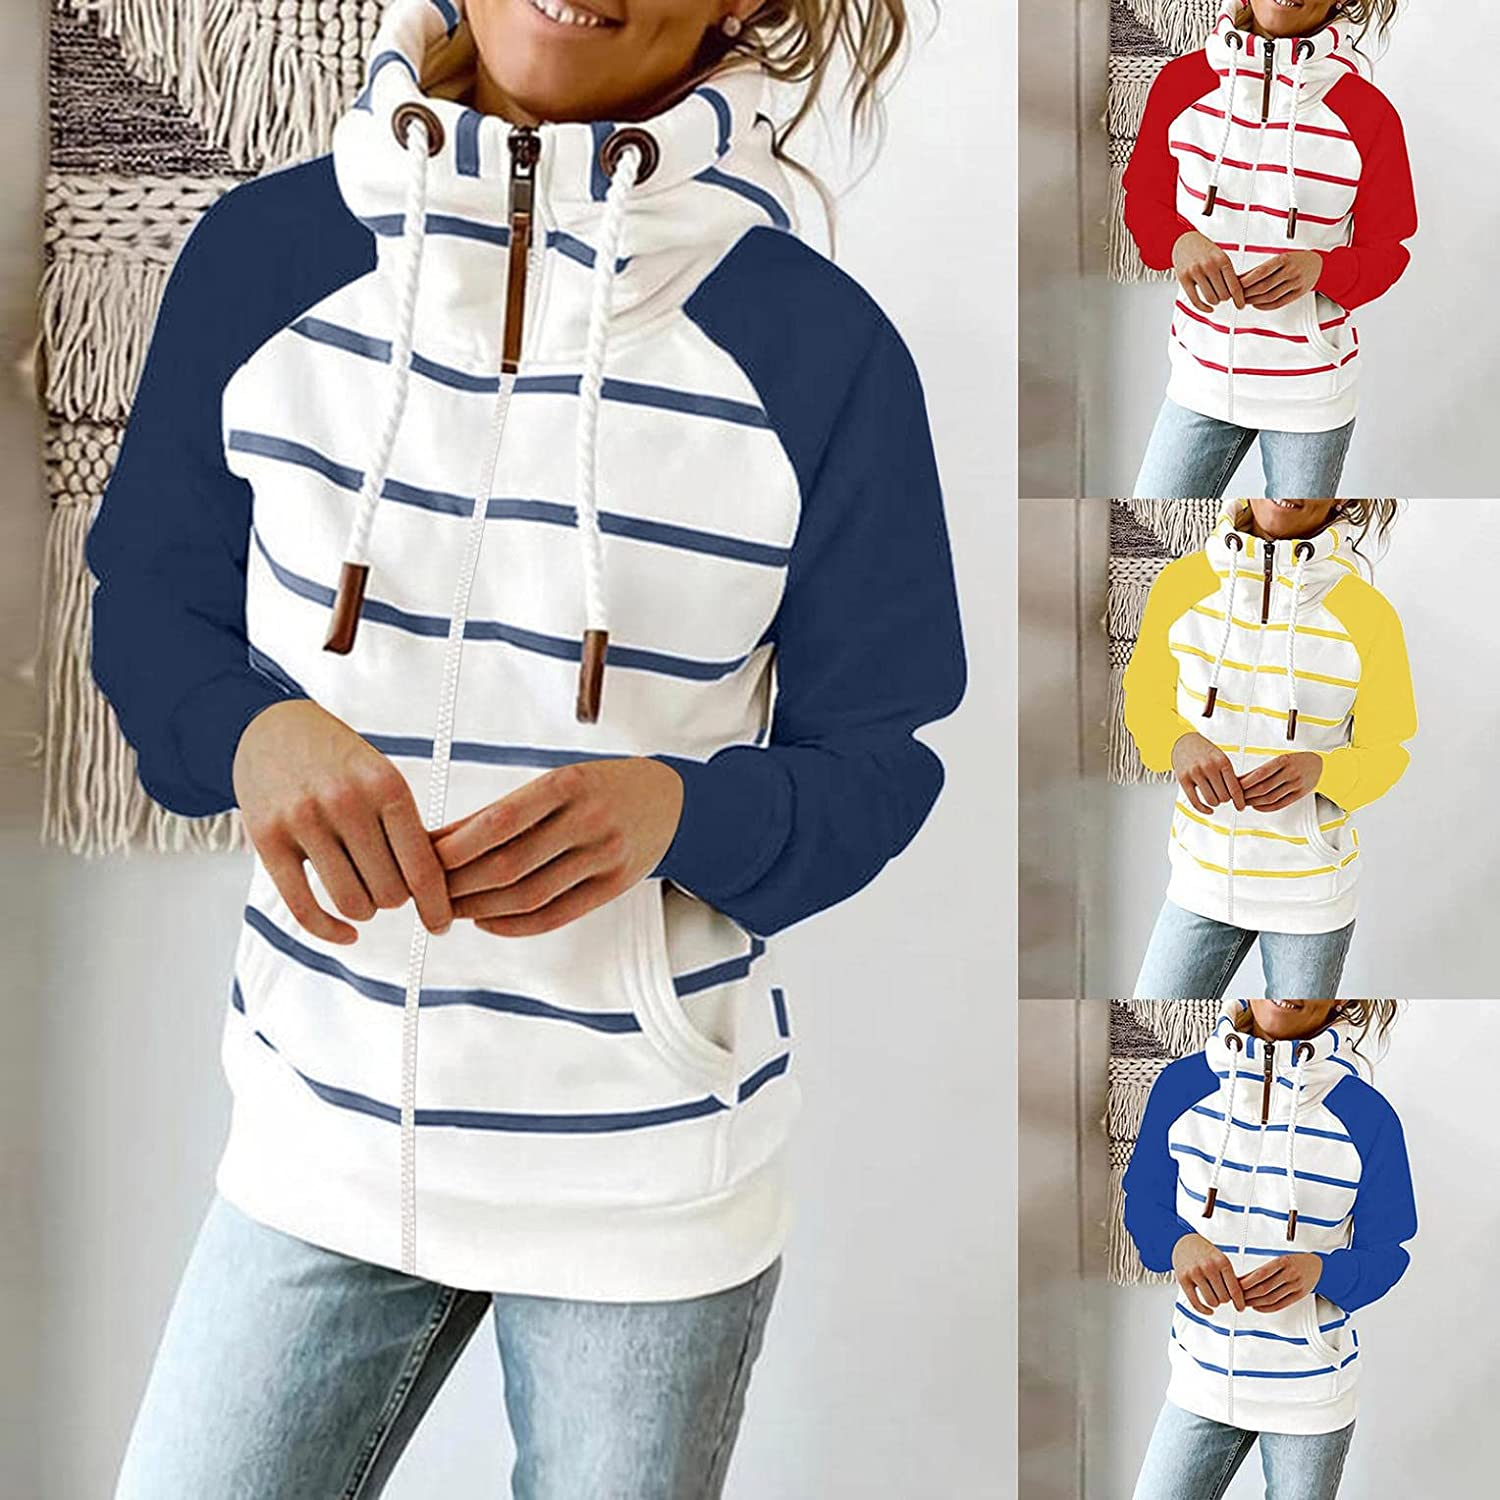 Sweatshirts for Women Pullover,Women's Crewneck Sweatshirts Tops Fashion Loose Long Sleeve with Pocket Pullover Shirts